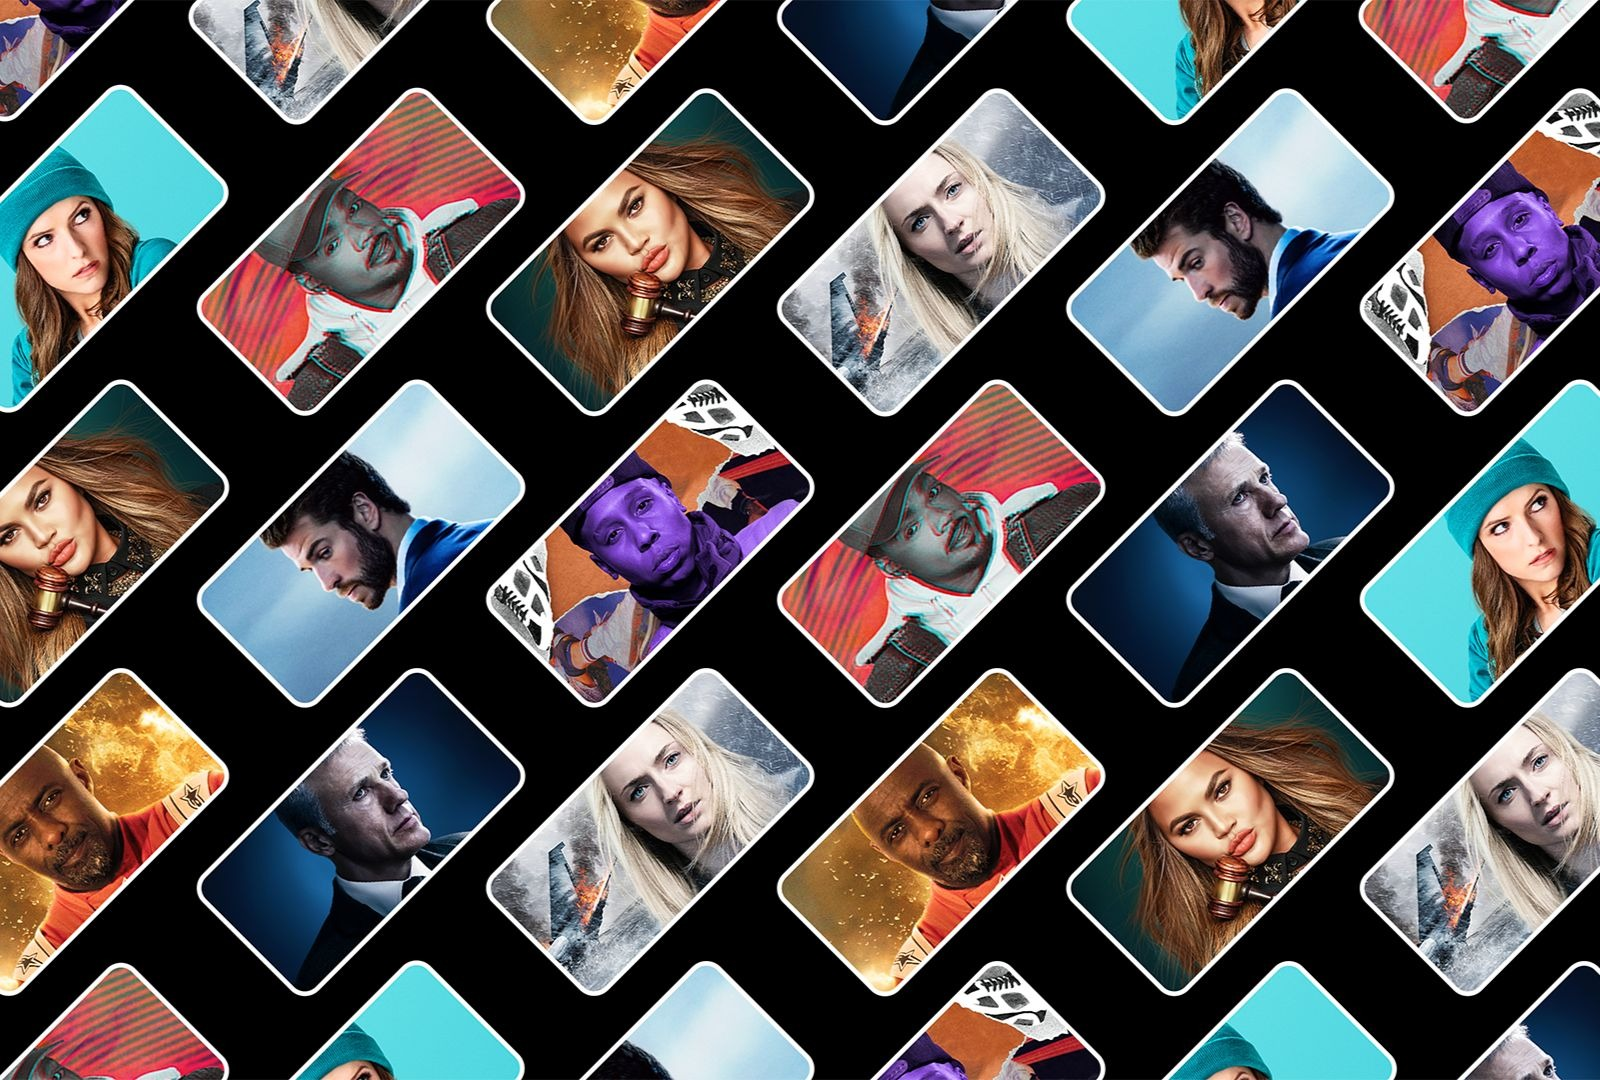 Now is not the time for Quibi, the new streaming service for your phone